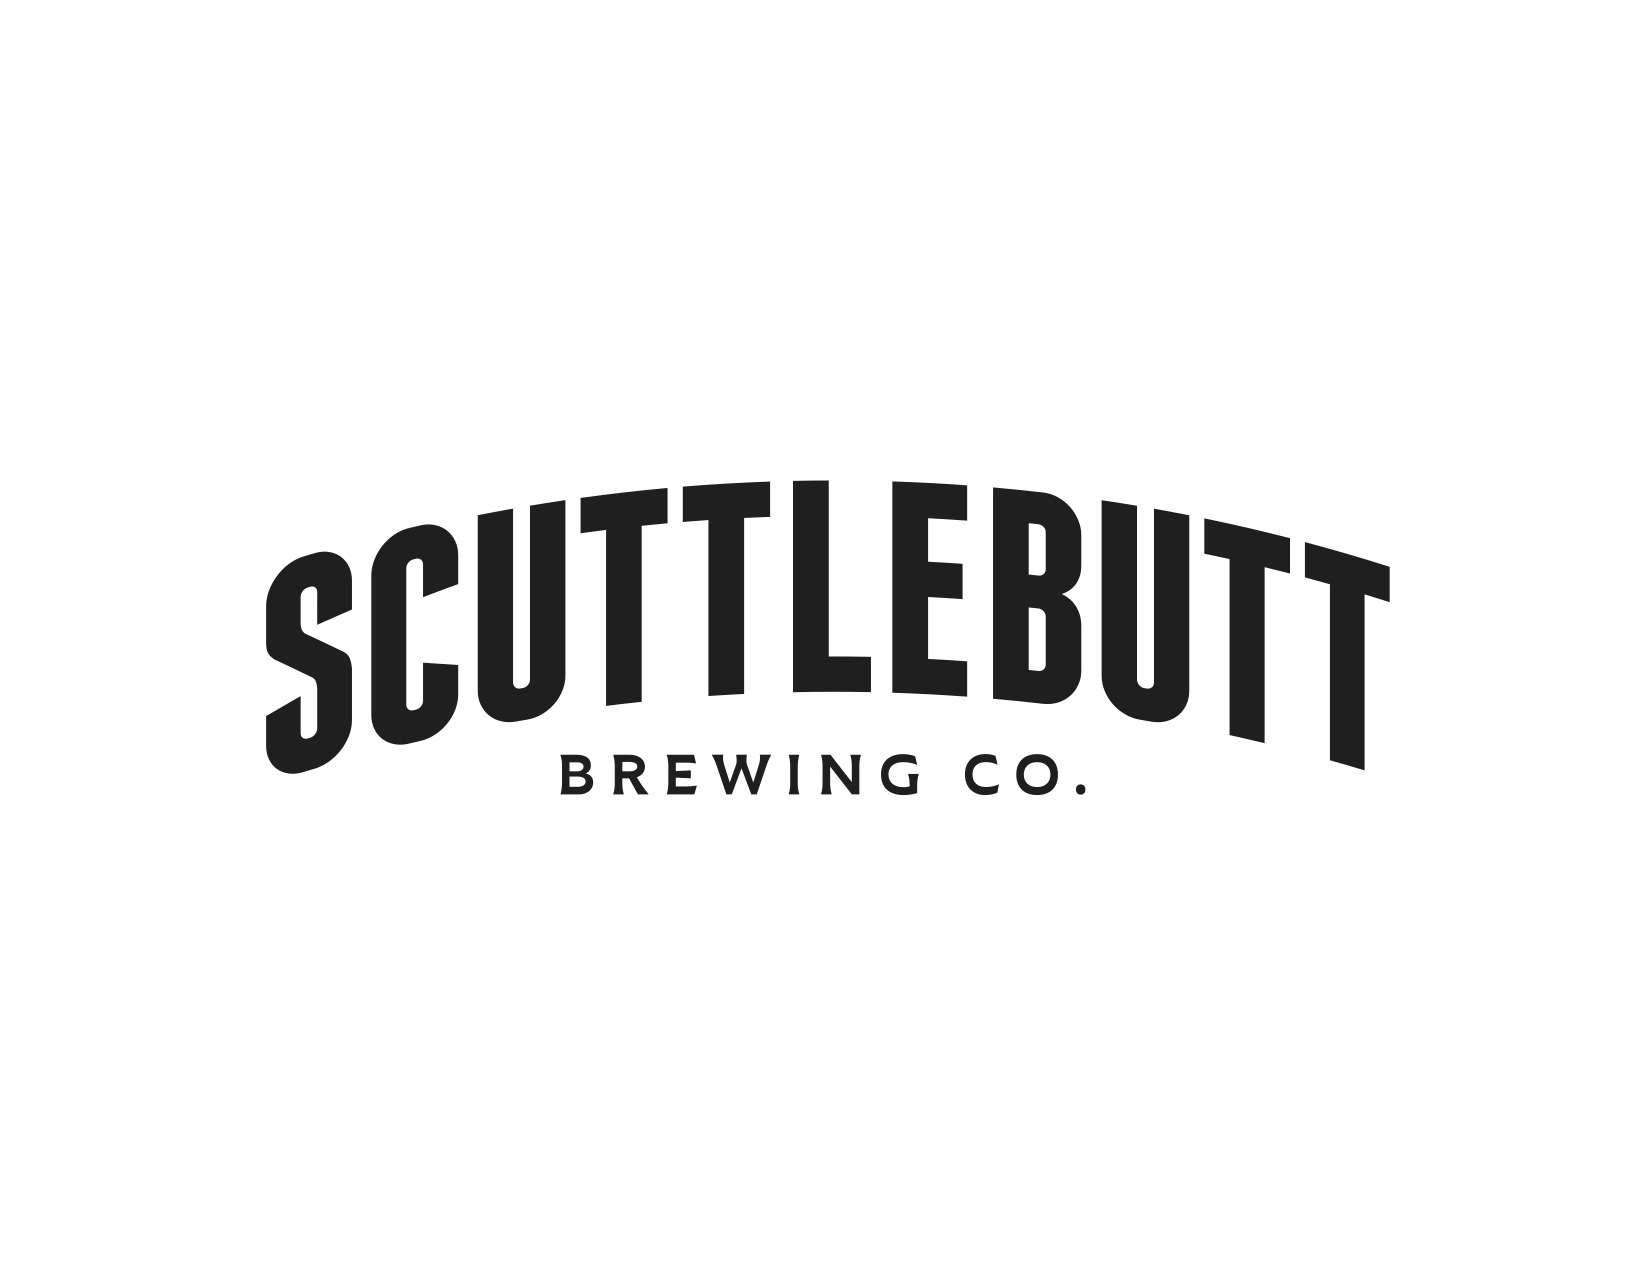 Tuesday, January 24th, 2017 Scuttlebutt Brewing's Barleywine Release and Barrel Aged RIS Showcase